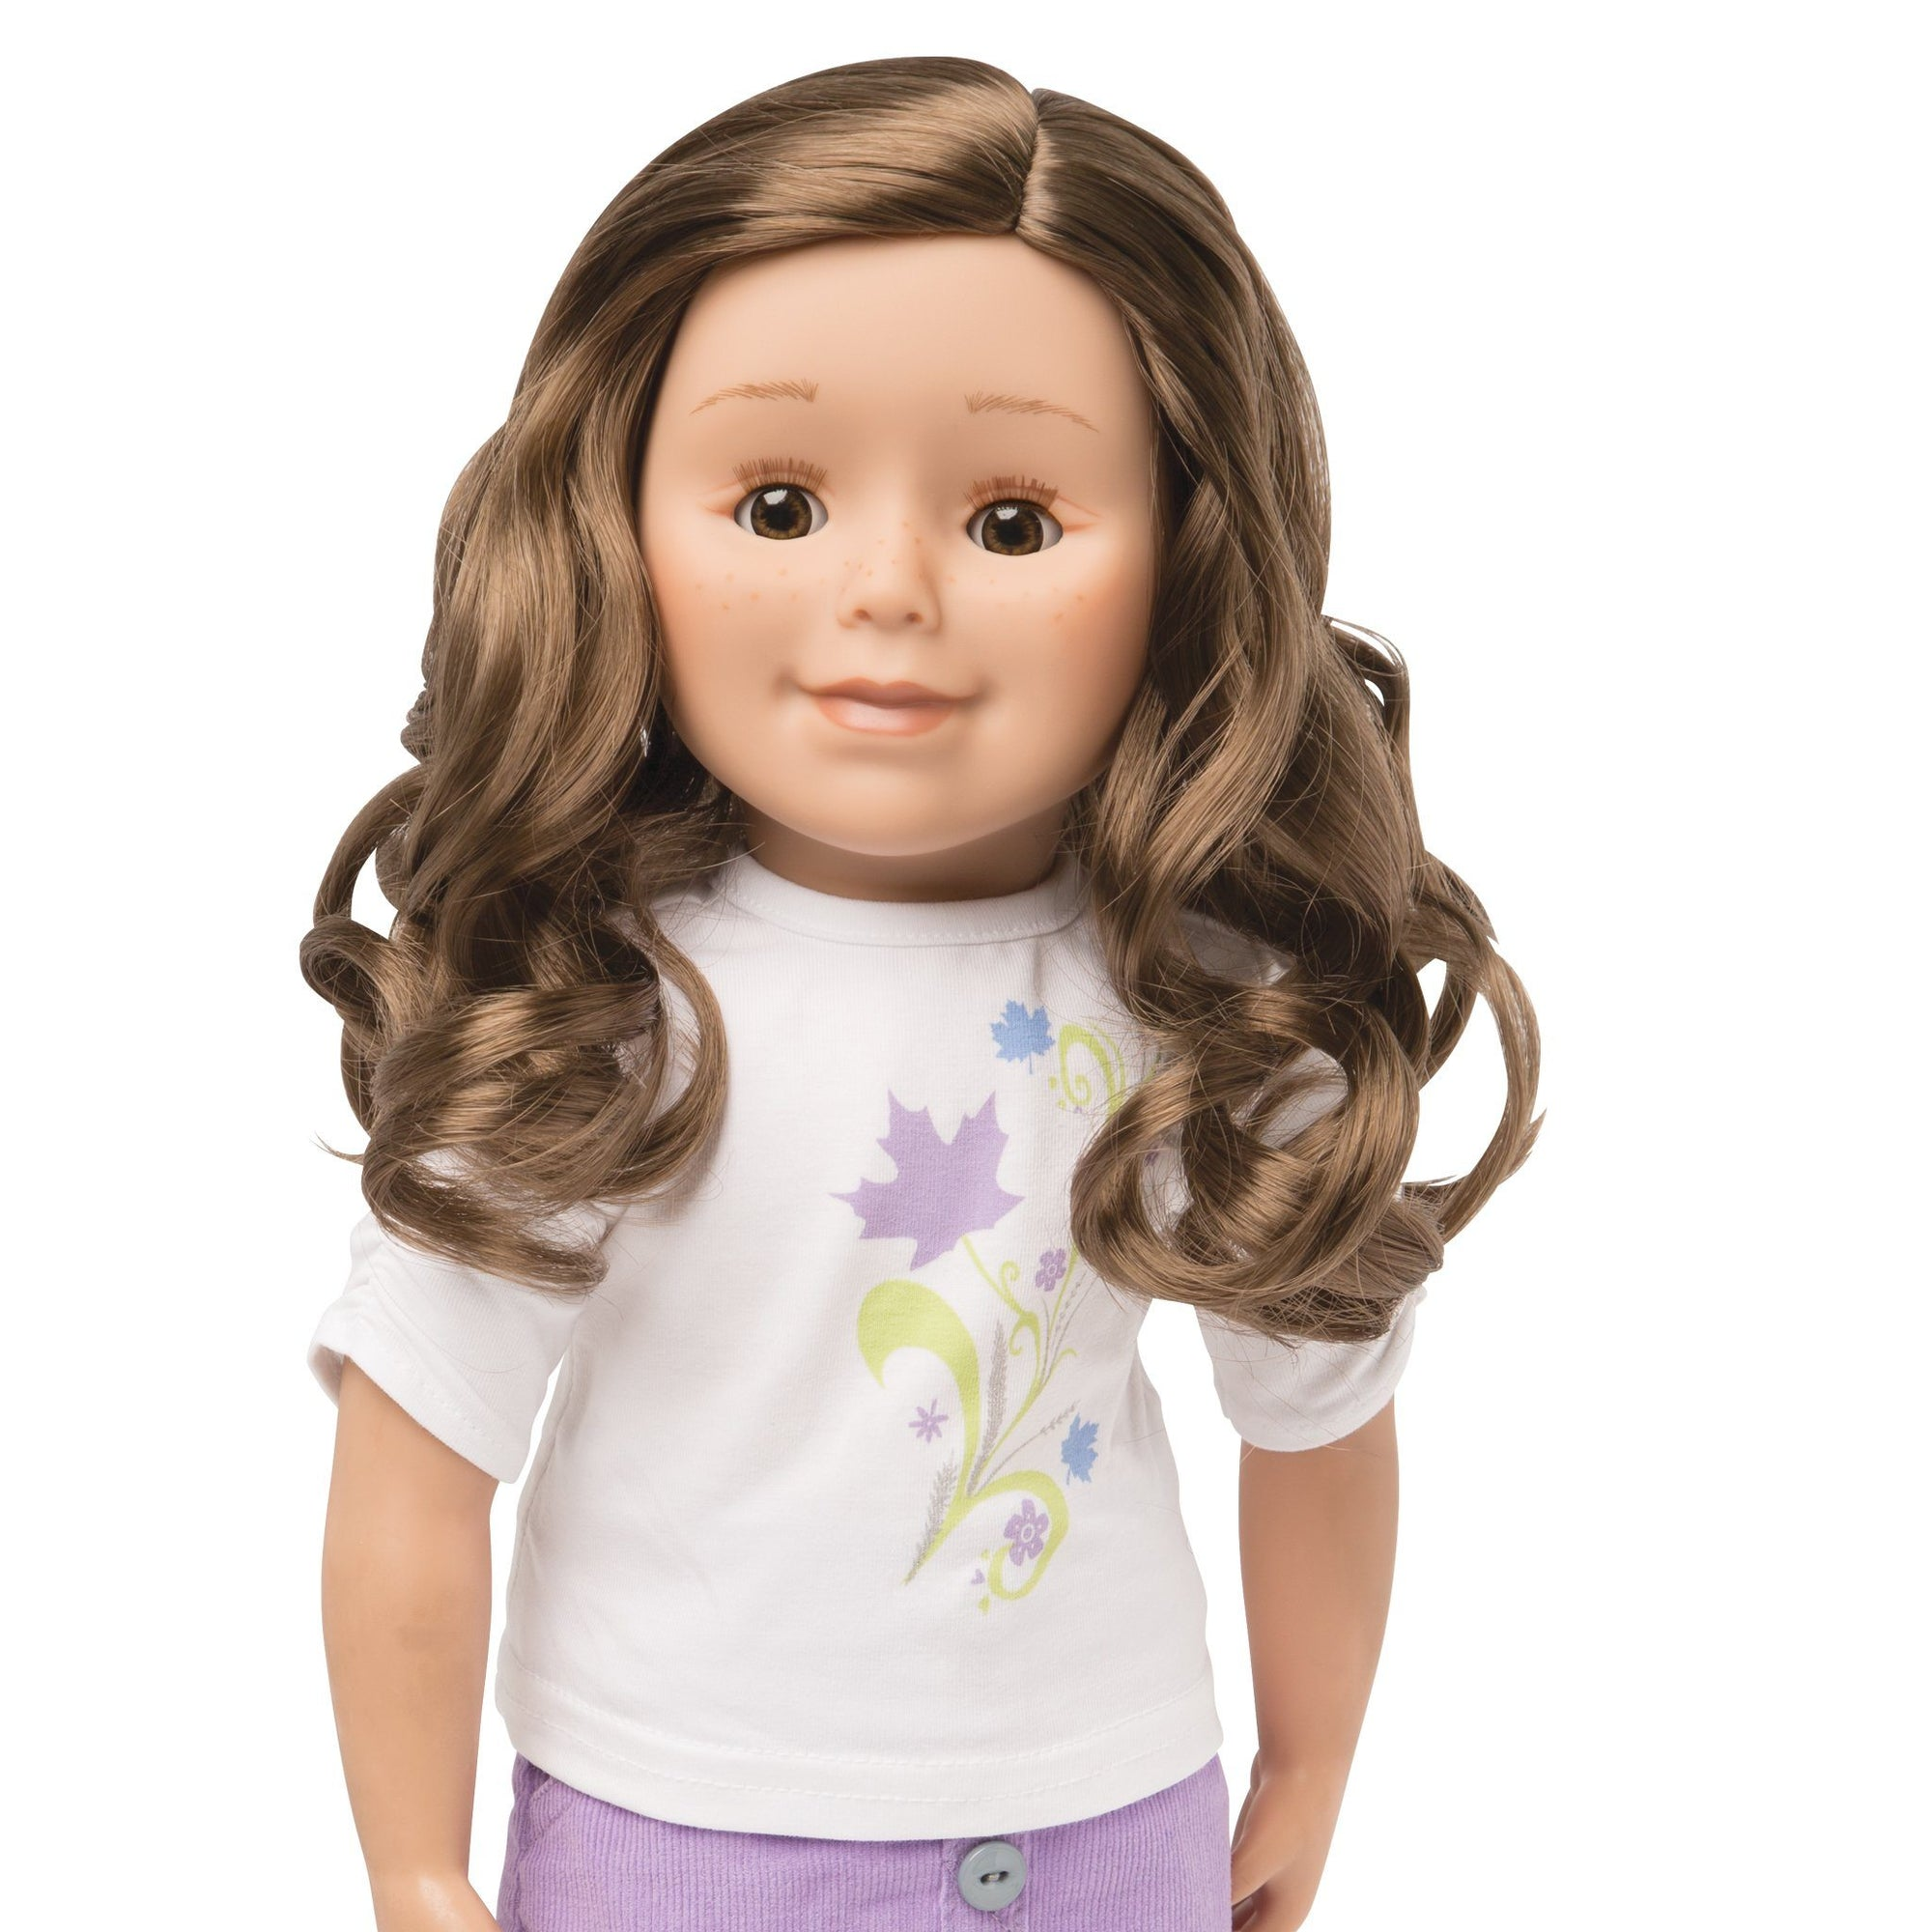 KMF27 Maplelea Friend 18 inch doll with long brown curly hair, medium-light skin, brown eyes and freckles